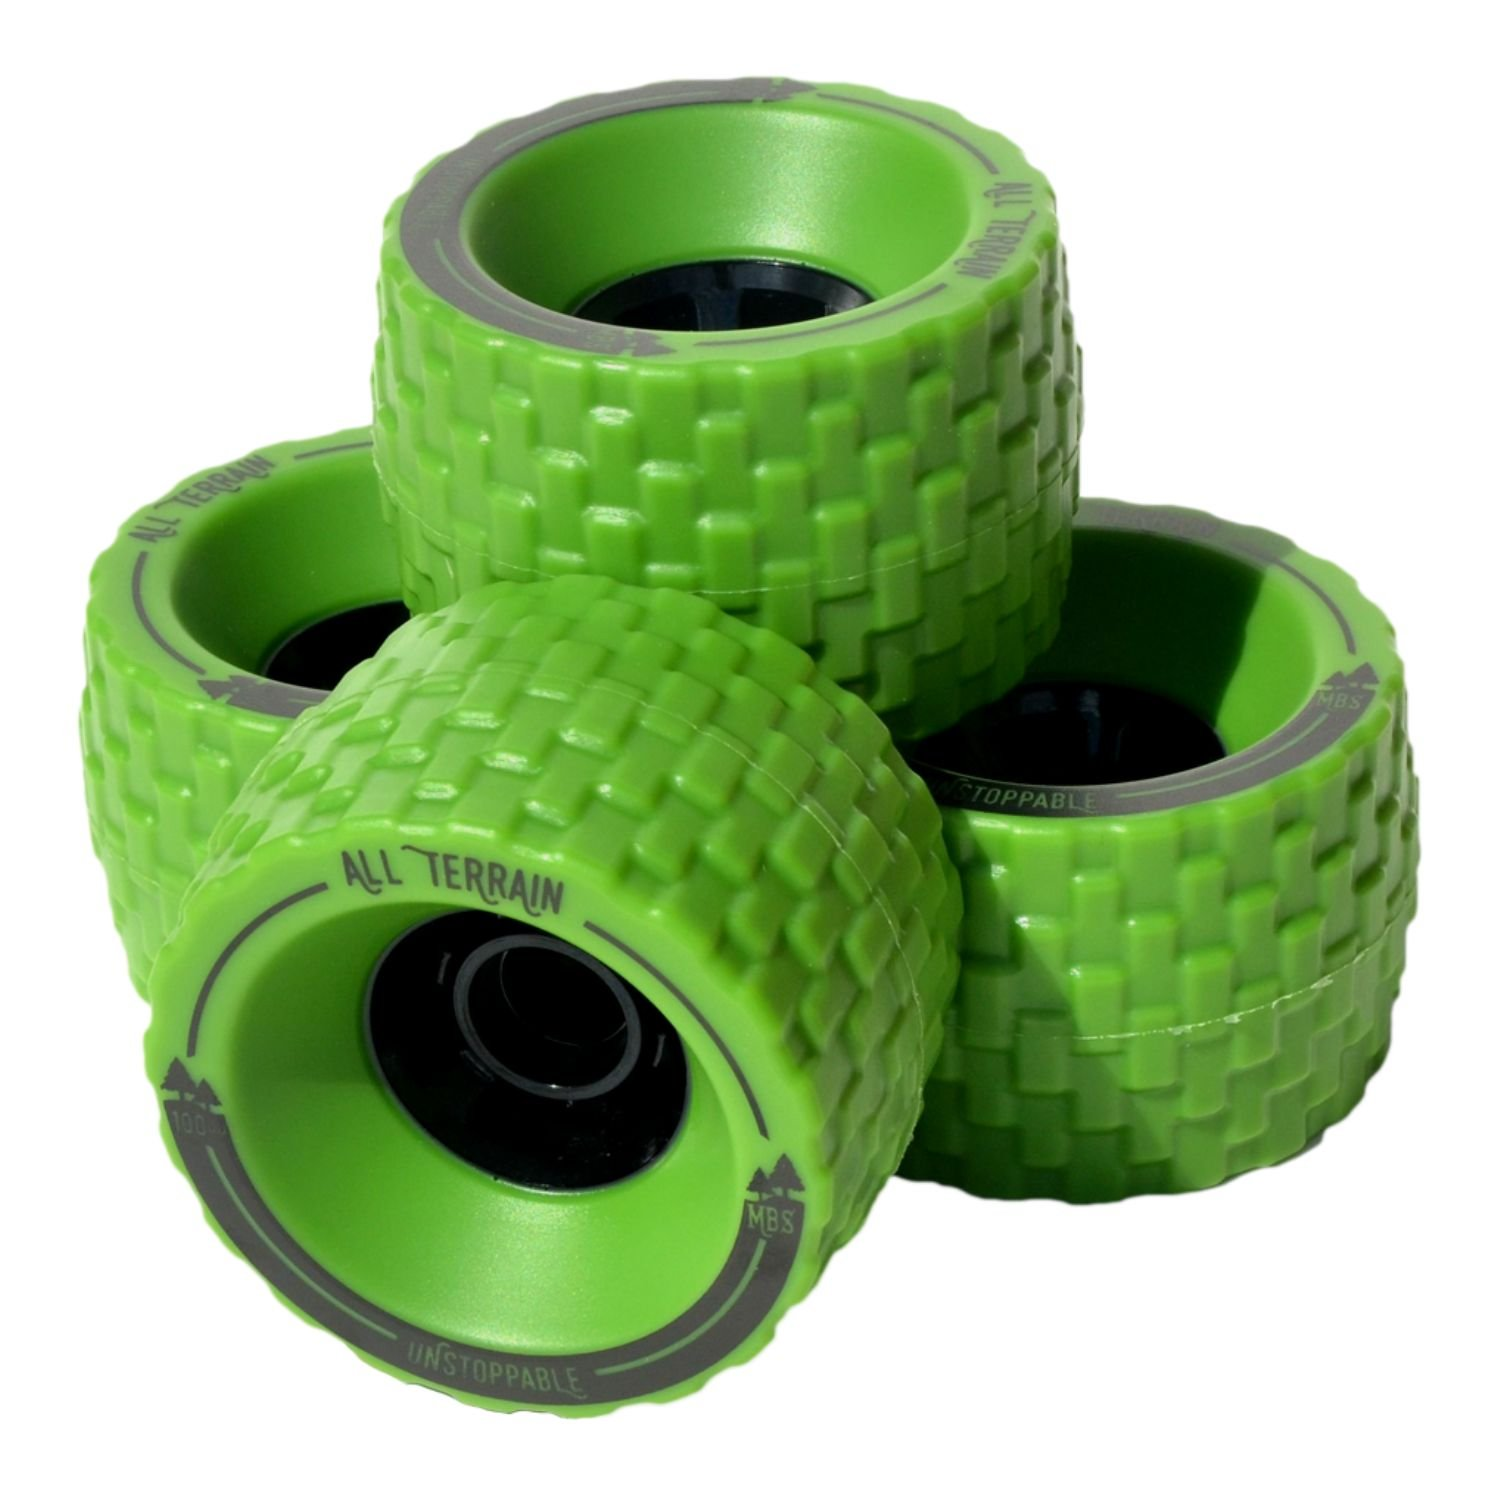 MBS All-Terrain Longboard Wheels - 100mm X 65mm - Green by MBS